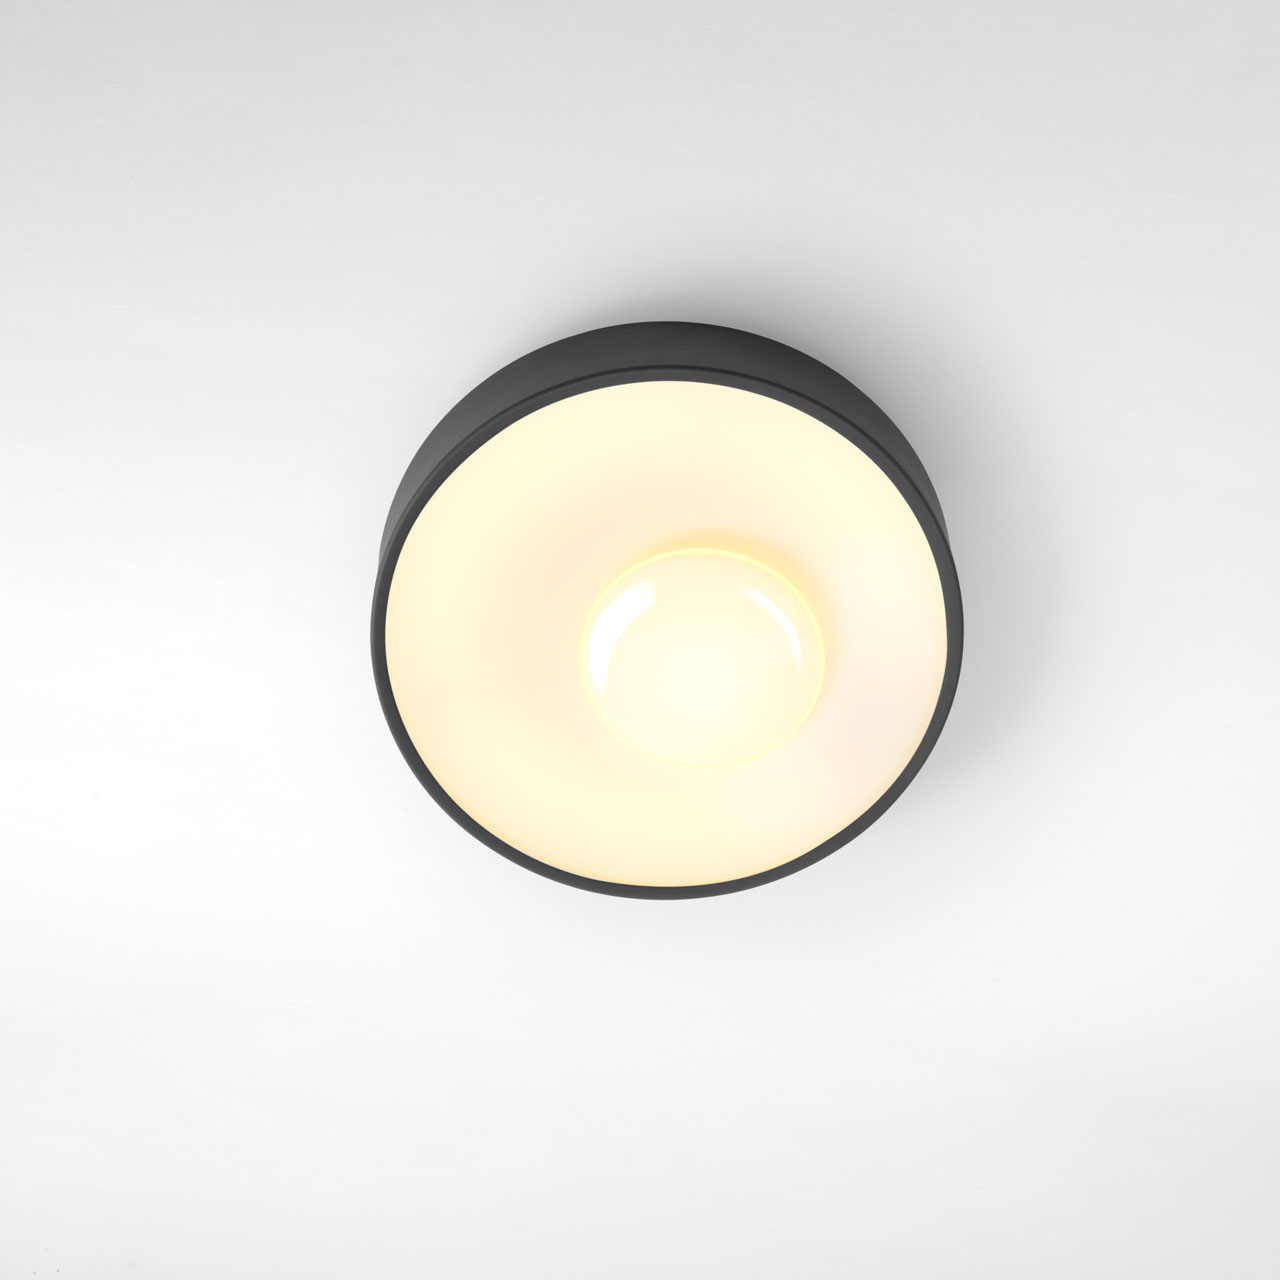 Sun Plafón 26 LED 12.8W Grafito (Dimmable)